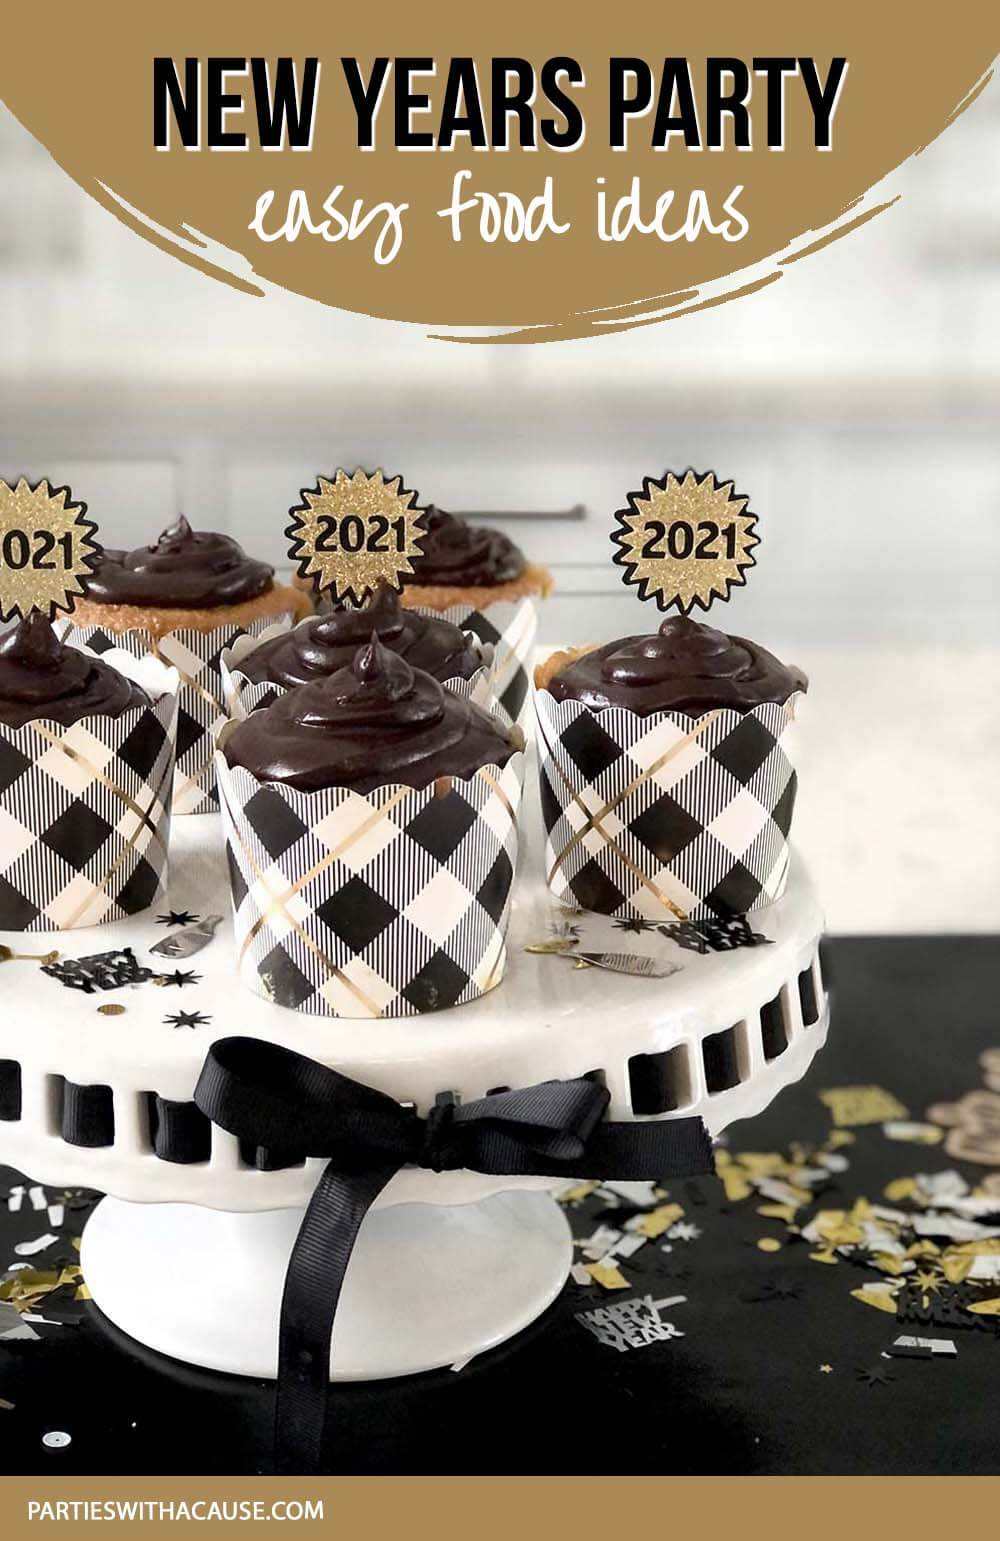 Easy New years party food ideas with leopard print cupcakes by Salt Lake Party Stylist